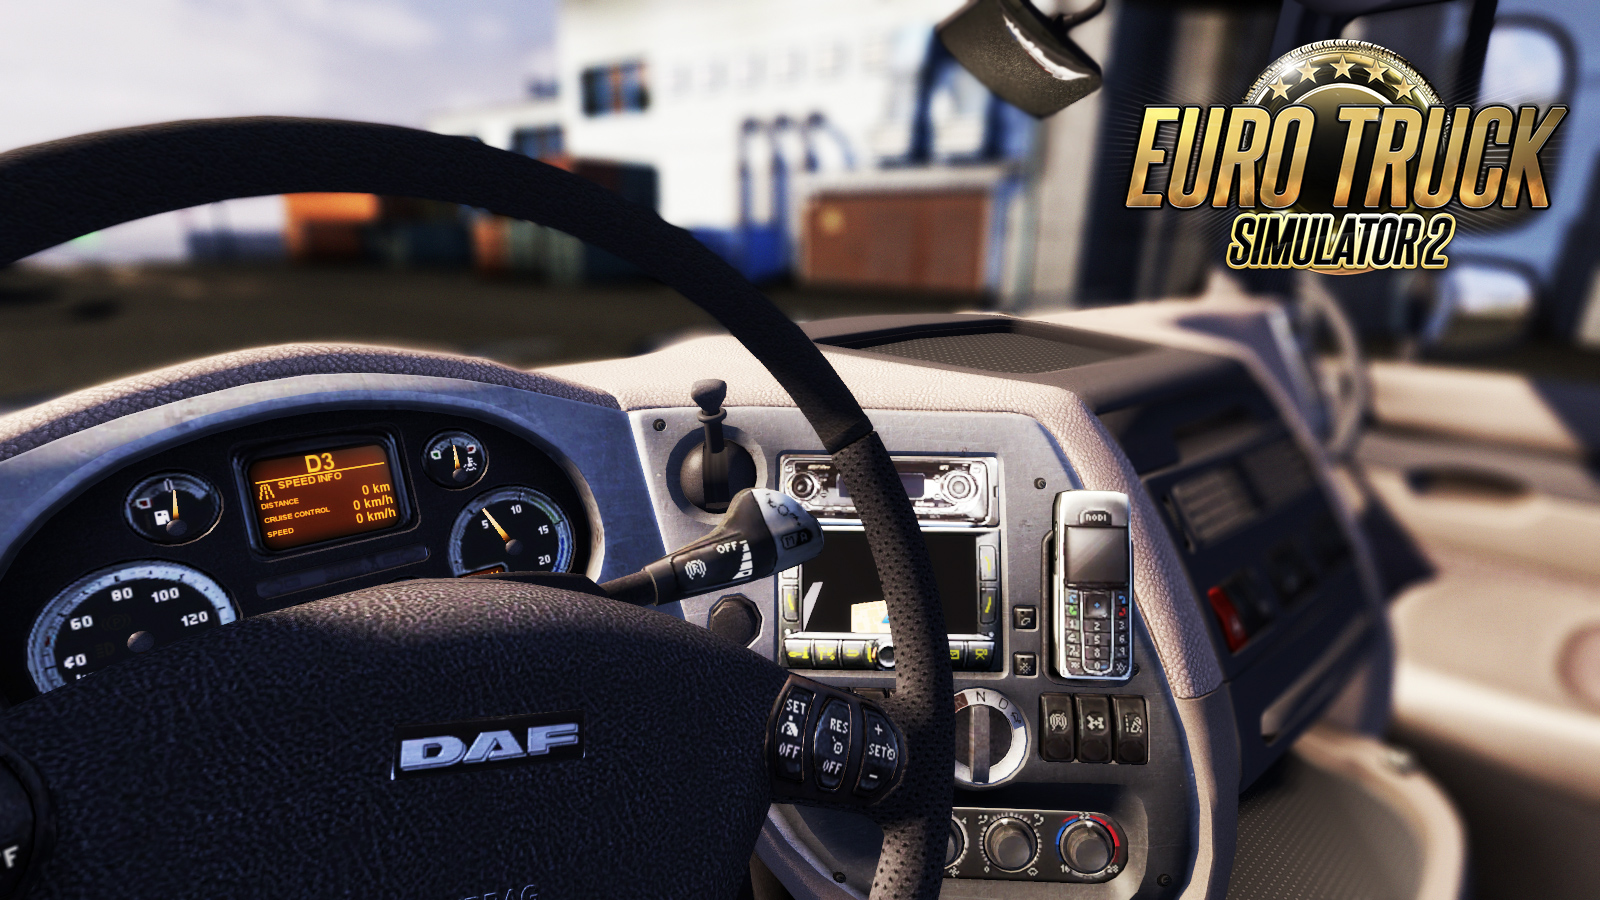 Soon an update for euro truck simulator 2 with licensed daf trucks